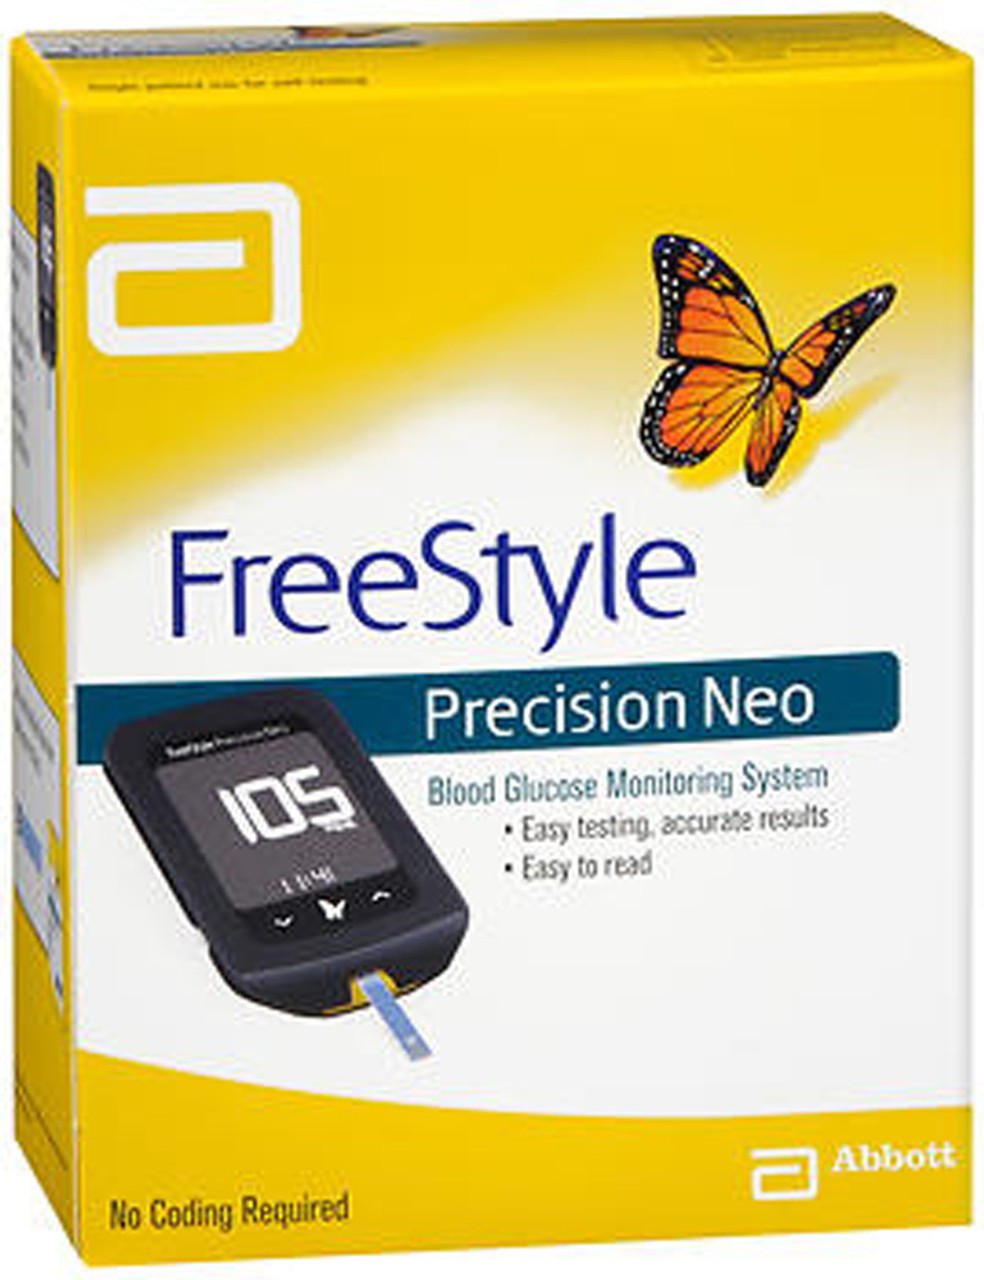 Abbott Freedom Lite freestyle precision neo blood glucose monitoring system